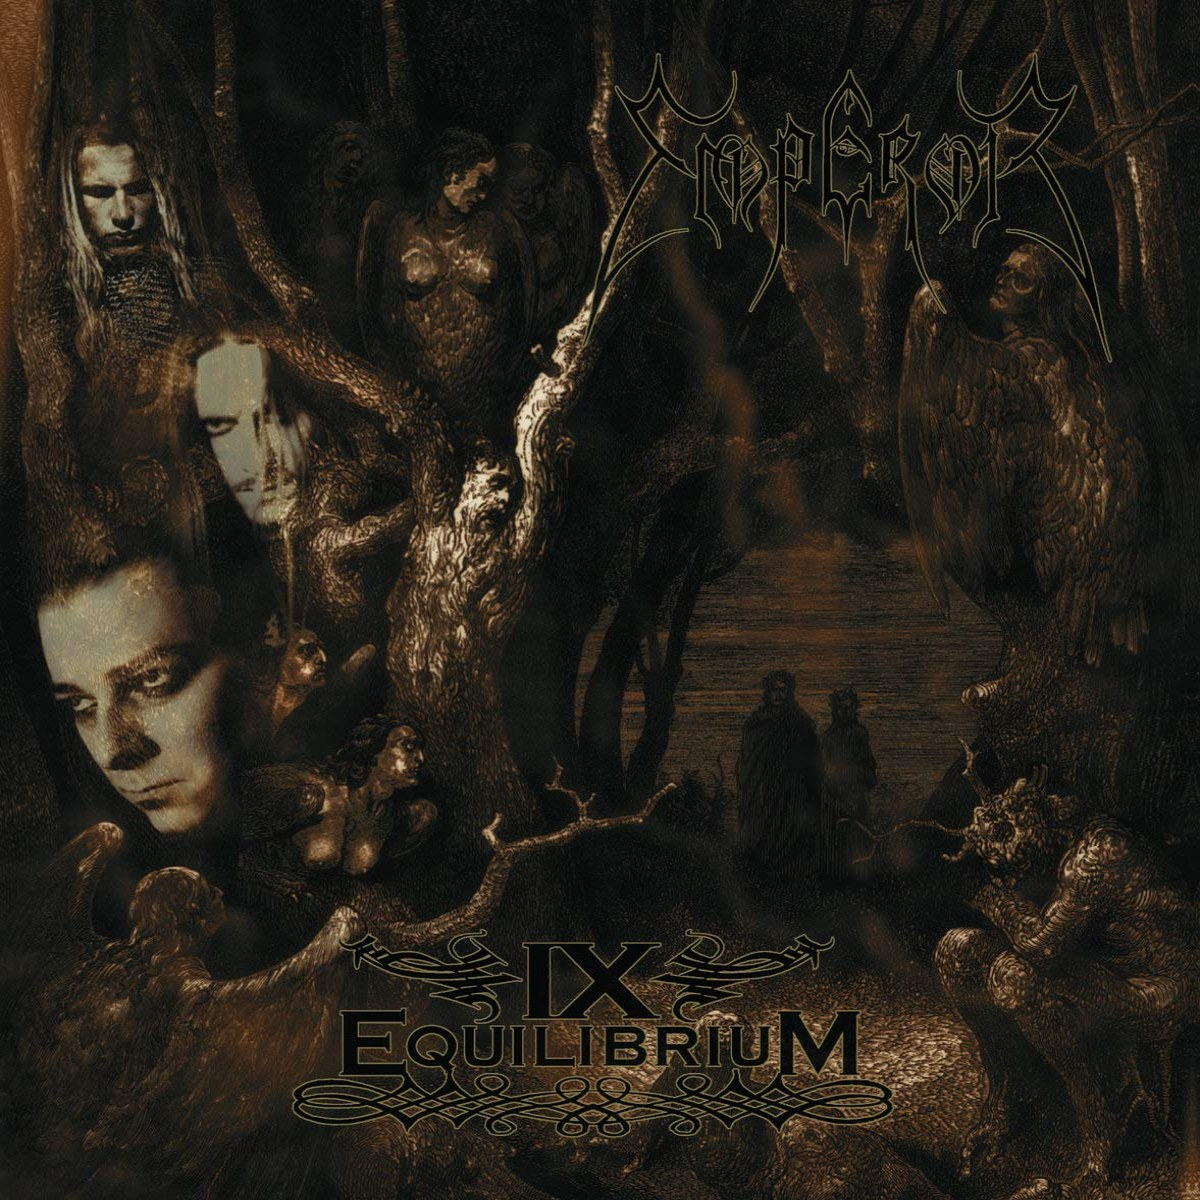 Review for Emperor - IX Equilibrium